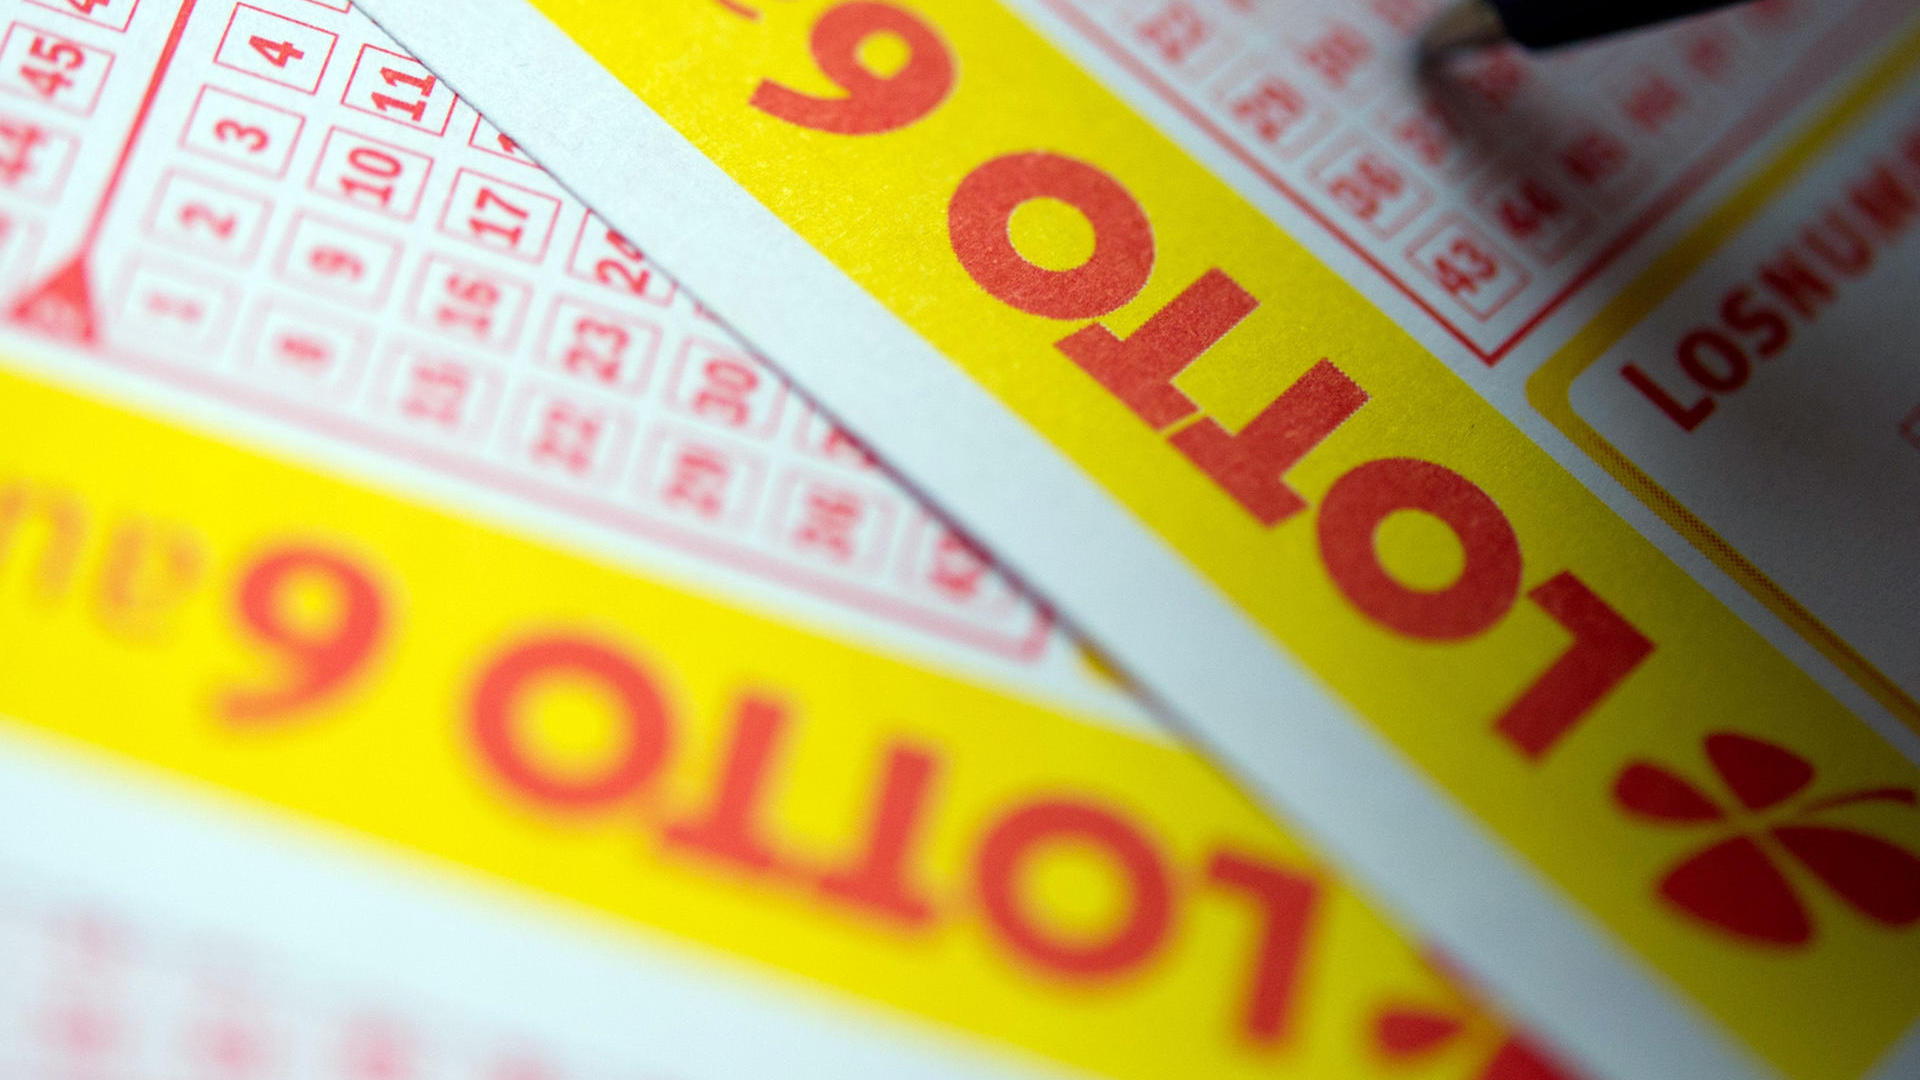 quoten lotto samstag